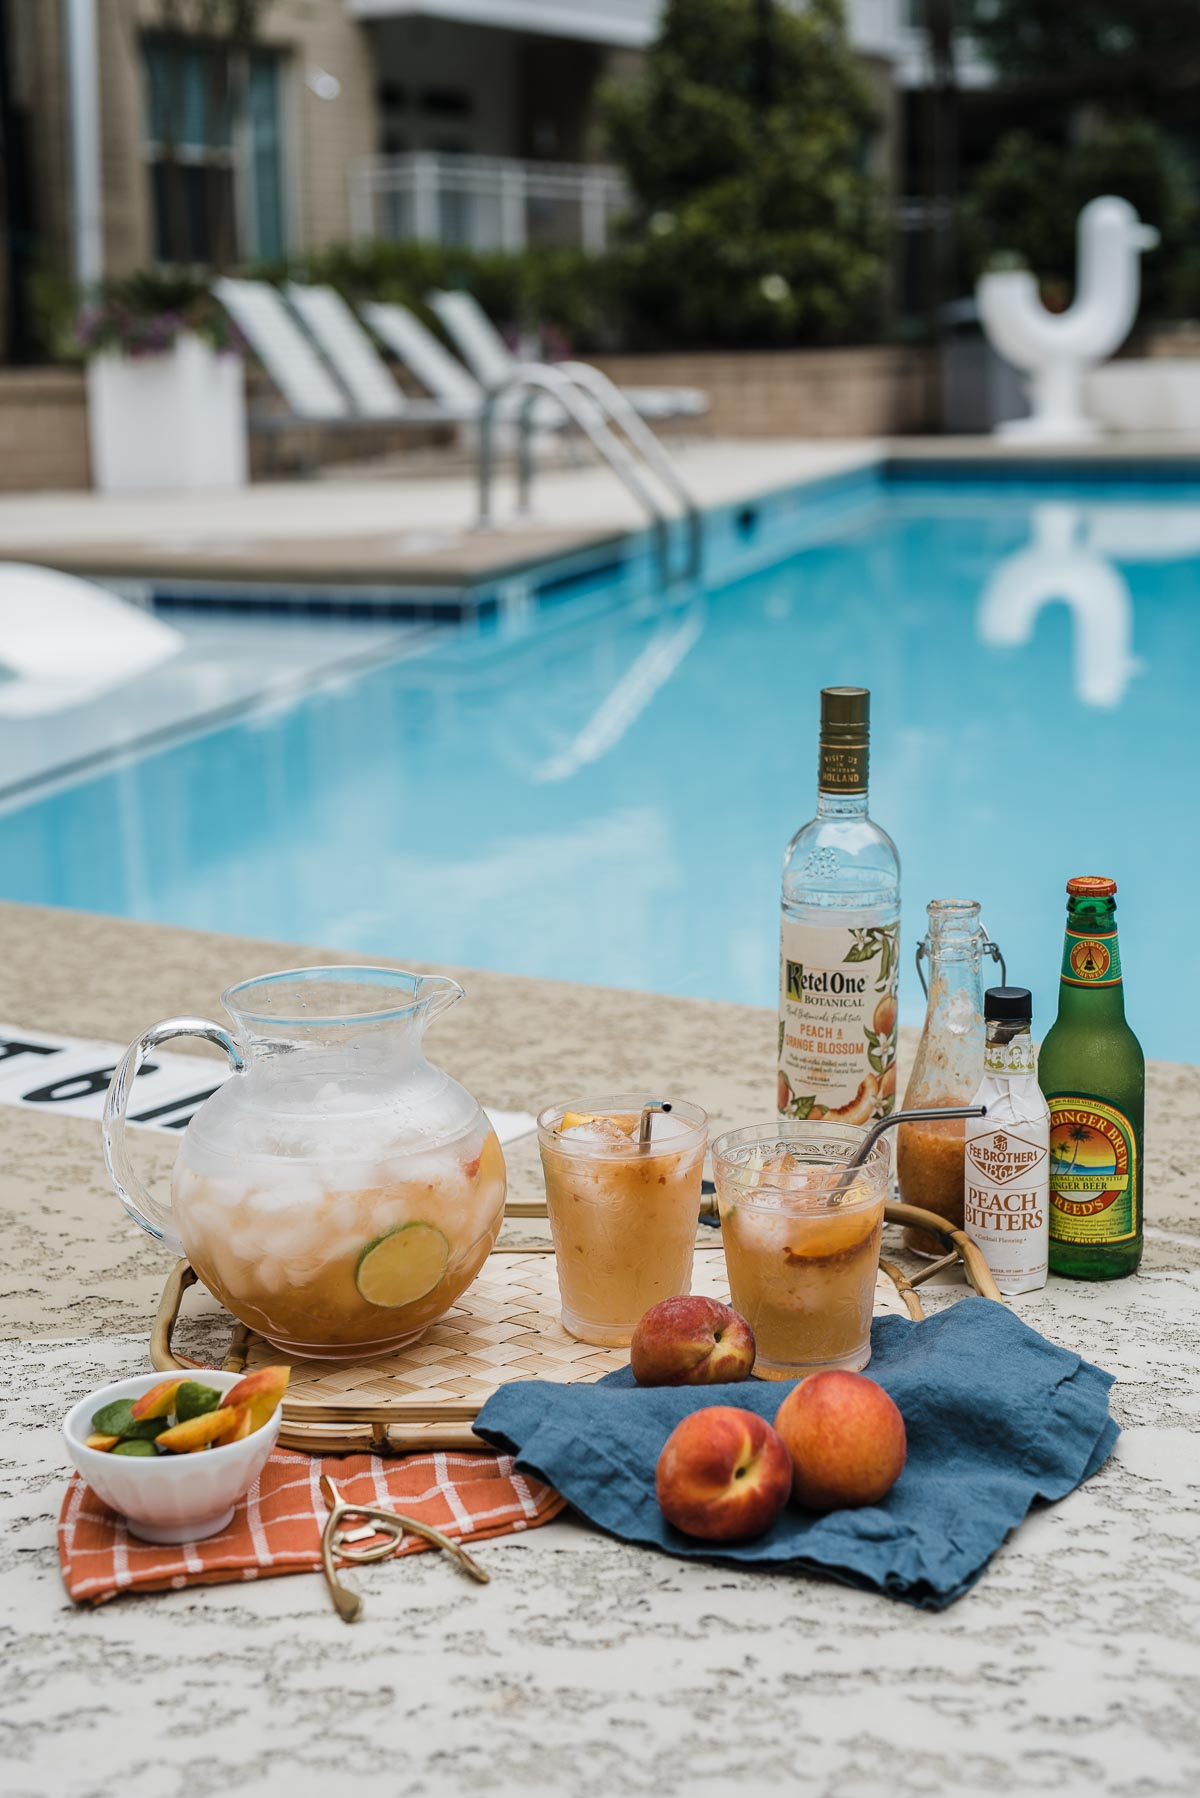 Summer cocktails by the pool